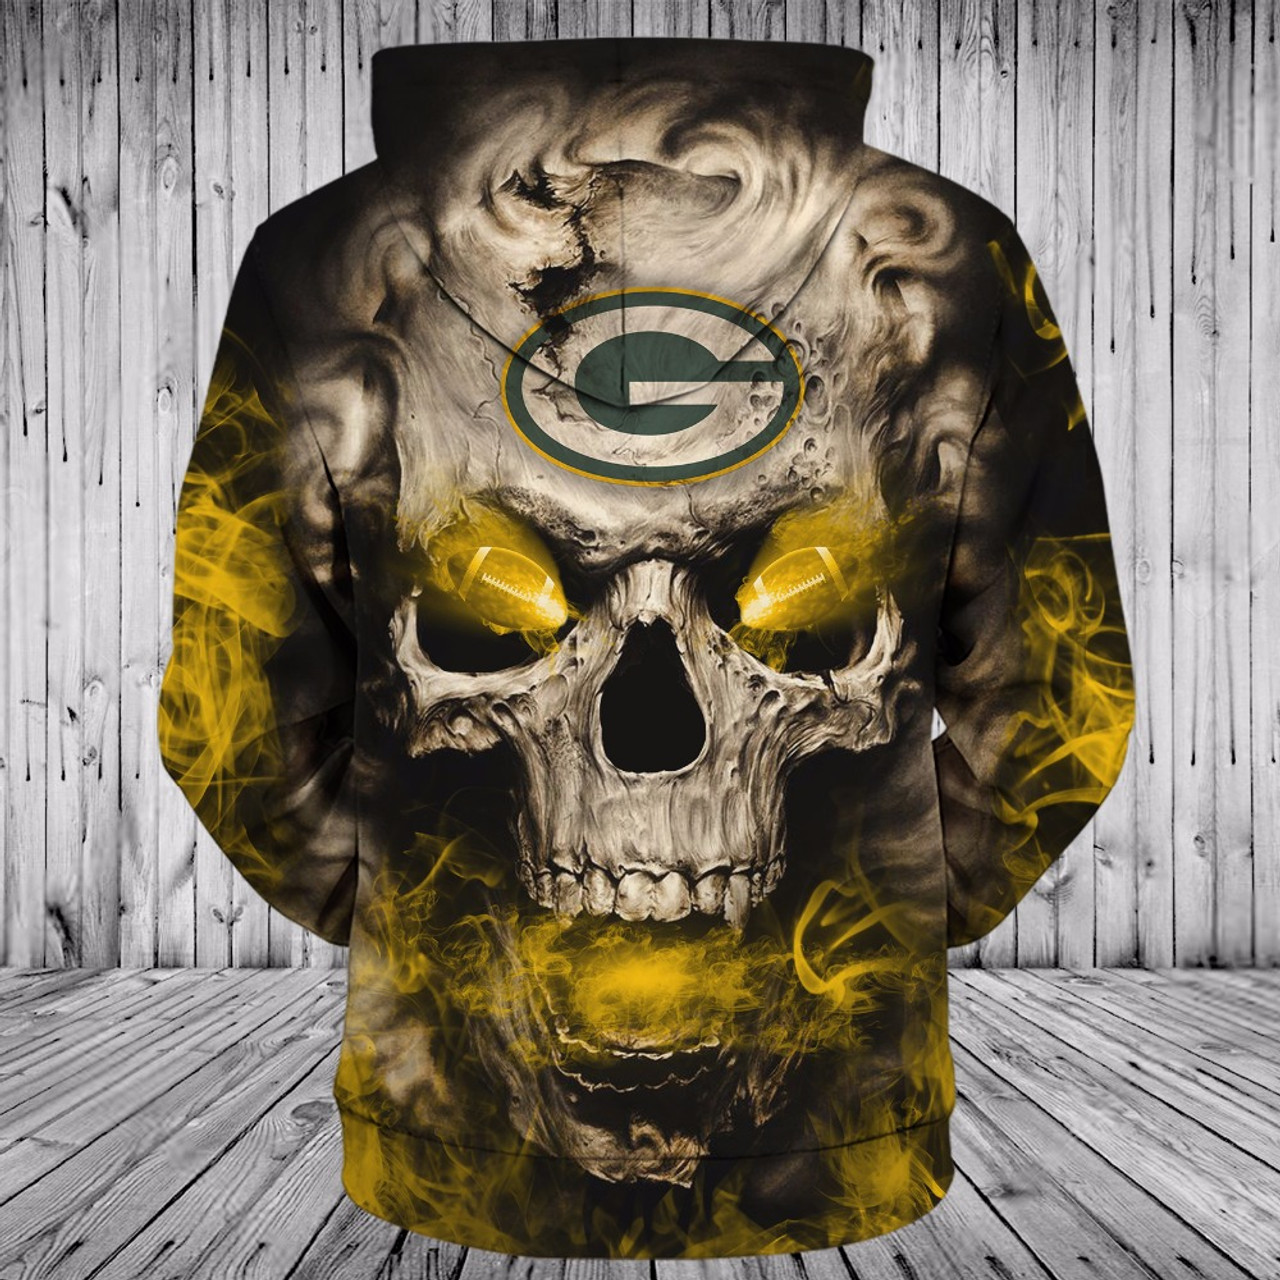 **(OFFICIALLY-LICENSED-N.F.L.GREEN-BAY-PACKERS,TRENDY-PULLOVER-HOODIES & NEON-GLOWING-FIERY-PACKERS-FOOTBALL-EYES,NICE-CUSTOM-3D-GRAPHIC-PRINTED-ALL-OVER/DOUBLE-SIDED-PACKERS-FOOTBALL-LOGO-TEAM-COLORS,PREMIUM-DEEP-POCKET-PULLOVER-HOODIES:)**